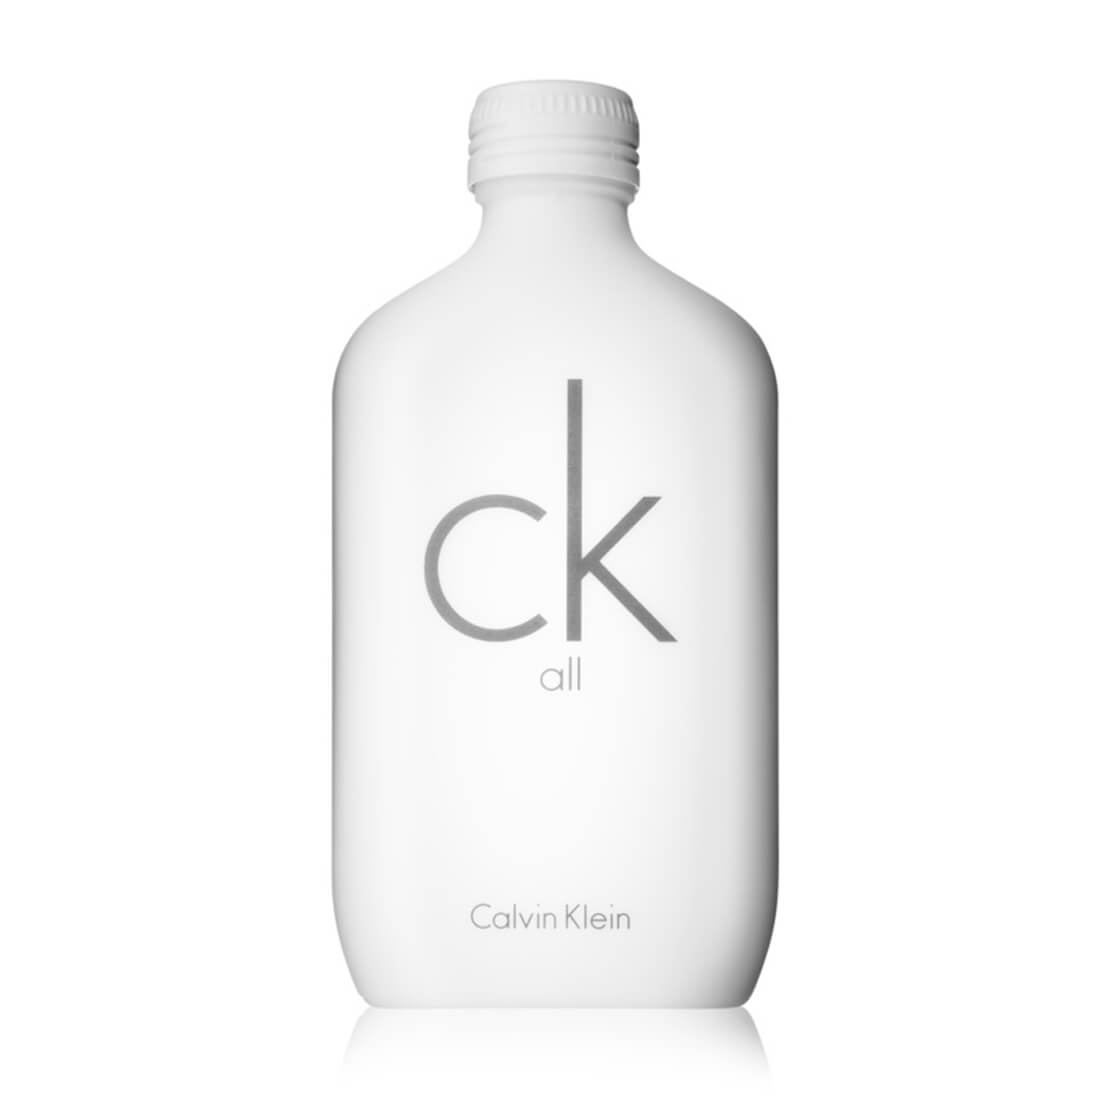 Calvin Klein CK All Eau De Toilette For Unisex 200ml